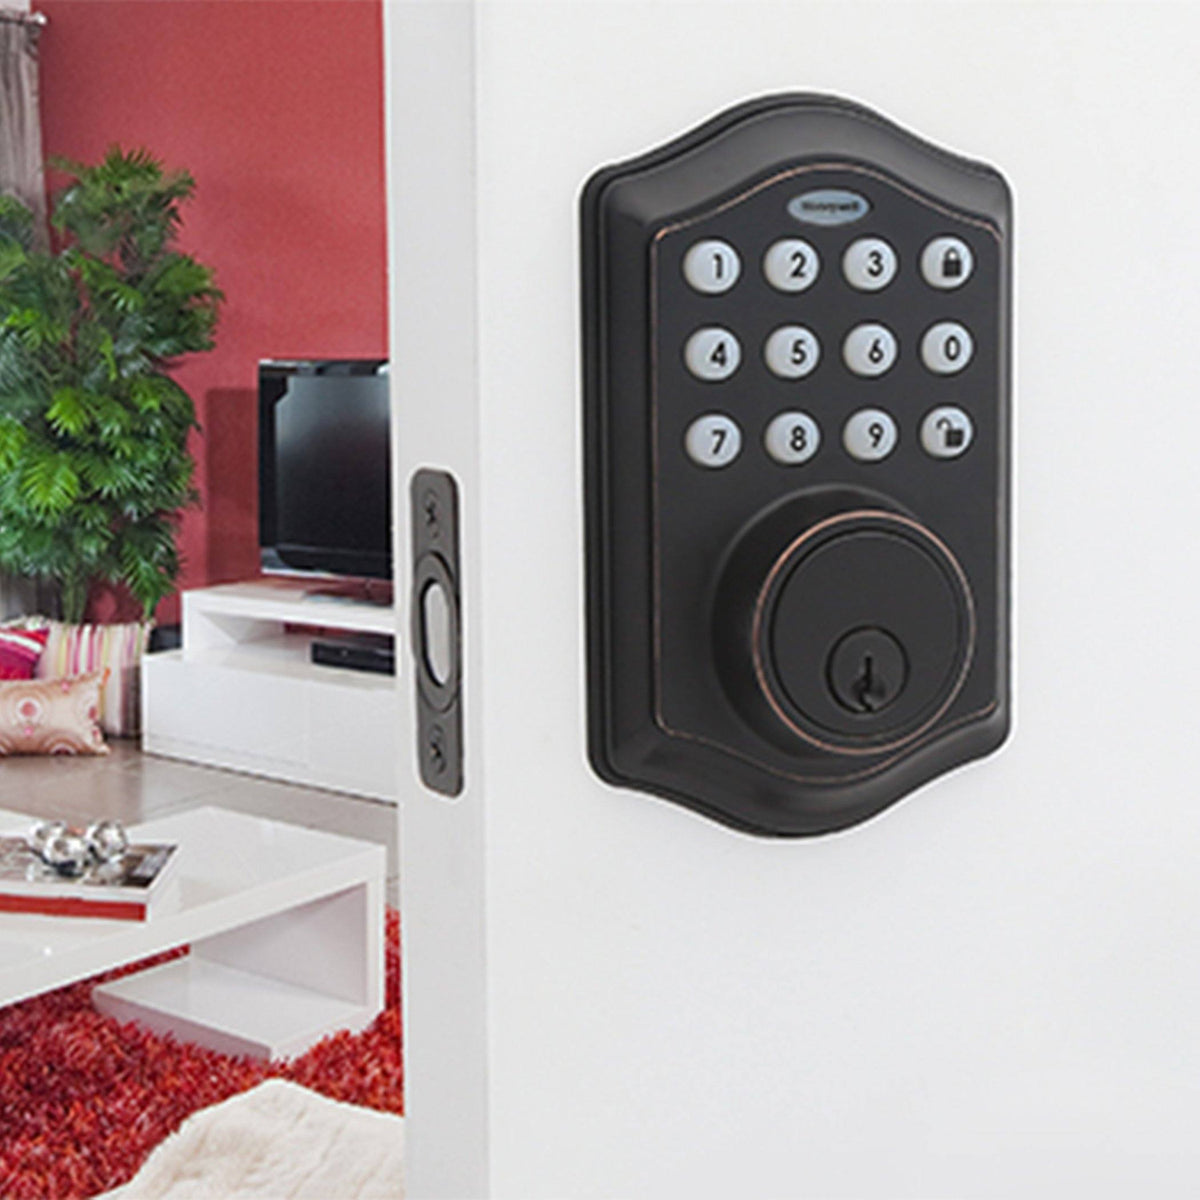 Honeywell 8712409 Electronic Deadbolt Door Lock with Keypad in Oil Rubbed Bronze